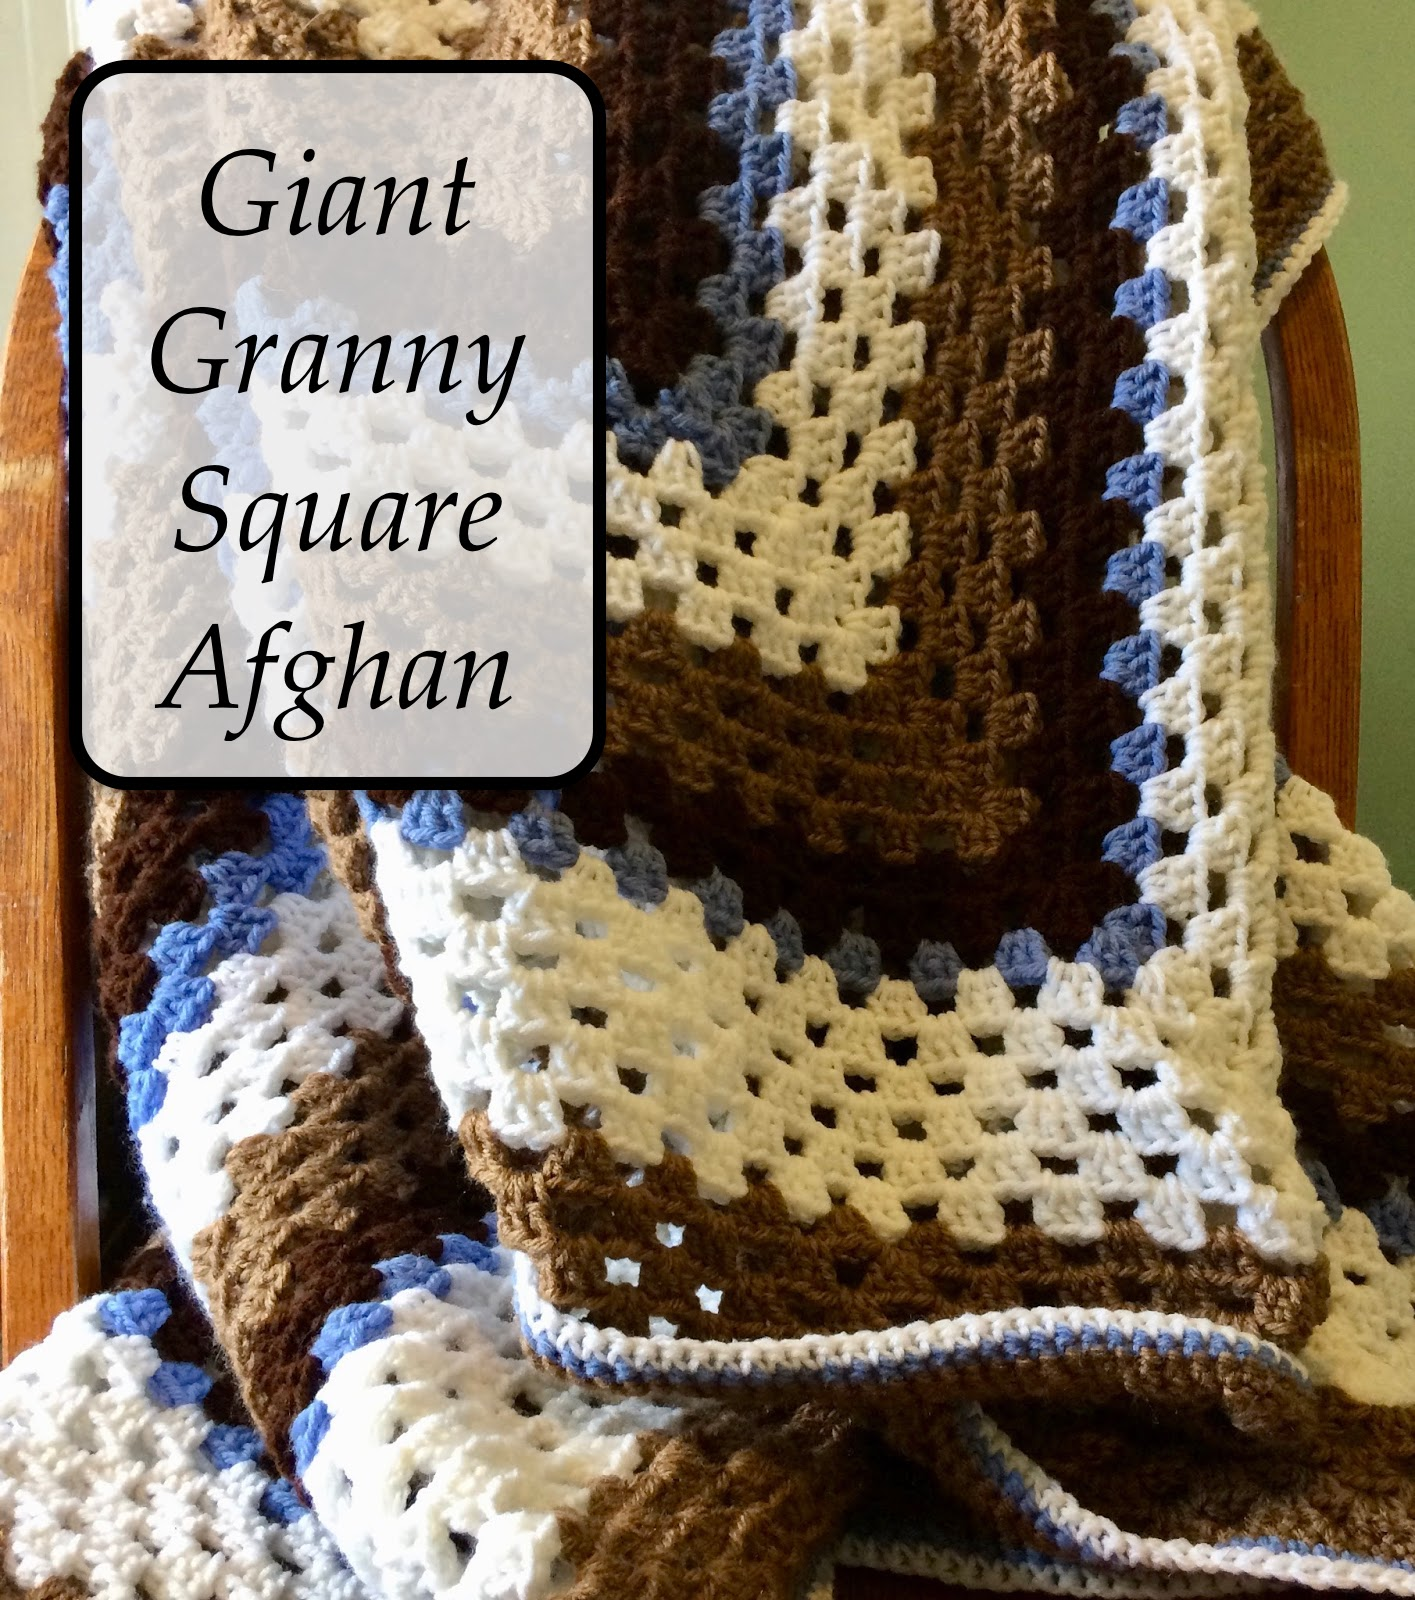 Home-Cooked & Handmade: Blue, Brown and White Giant Granny Square